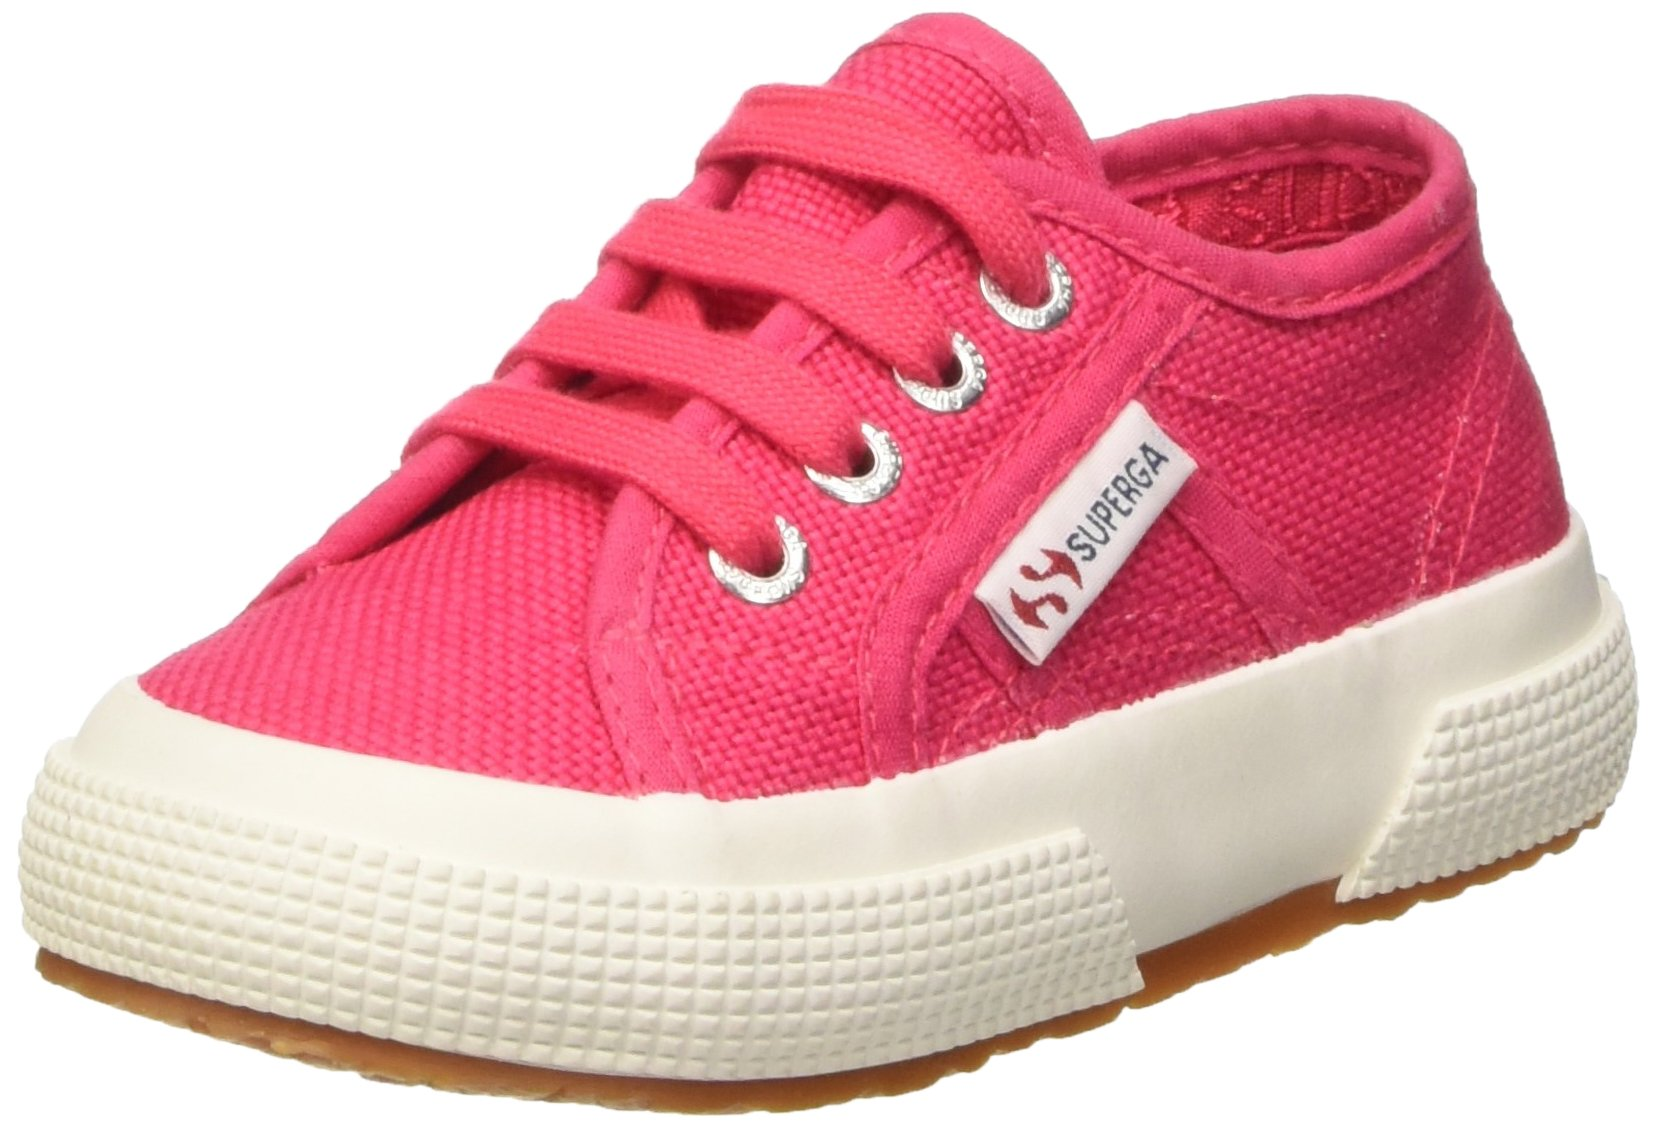 Unisex Shop Adulto Superga Scarpe Basse Stringate – Face 0wO8mNnv